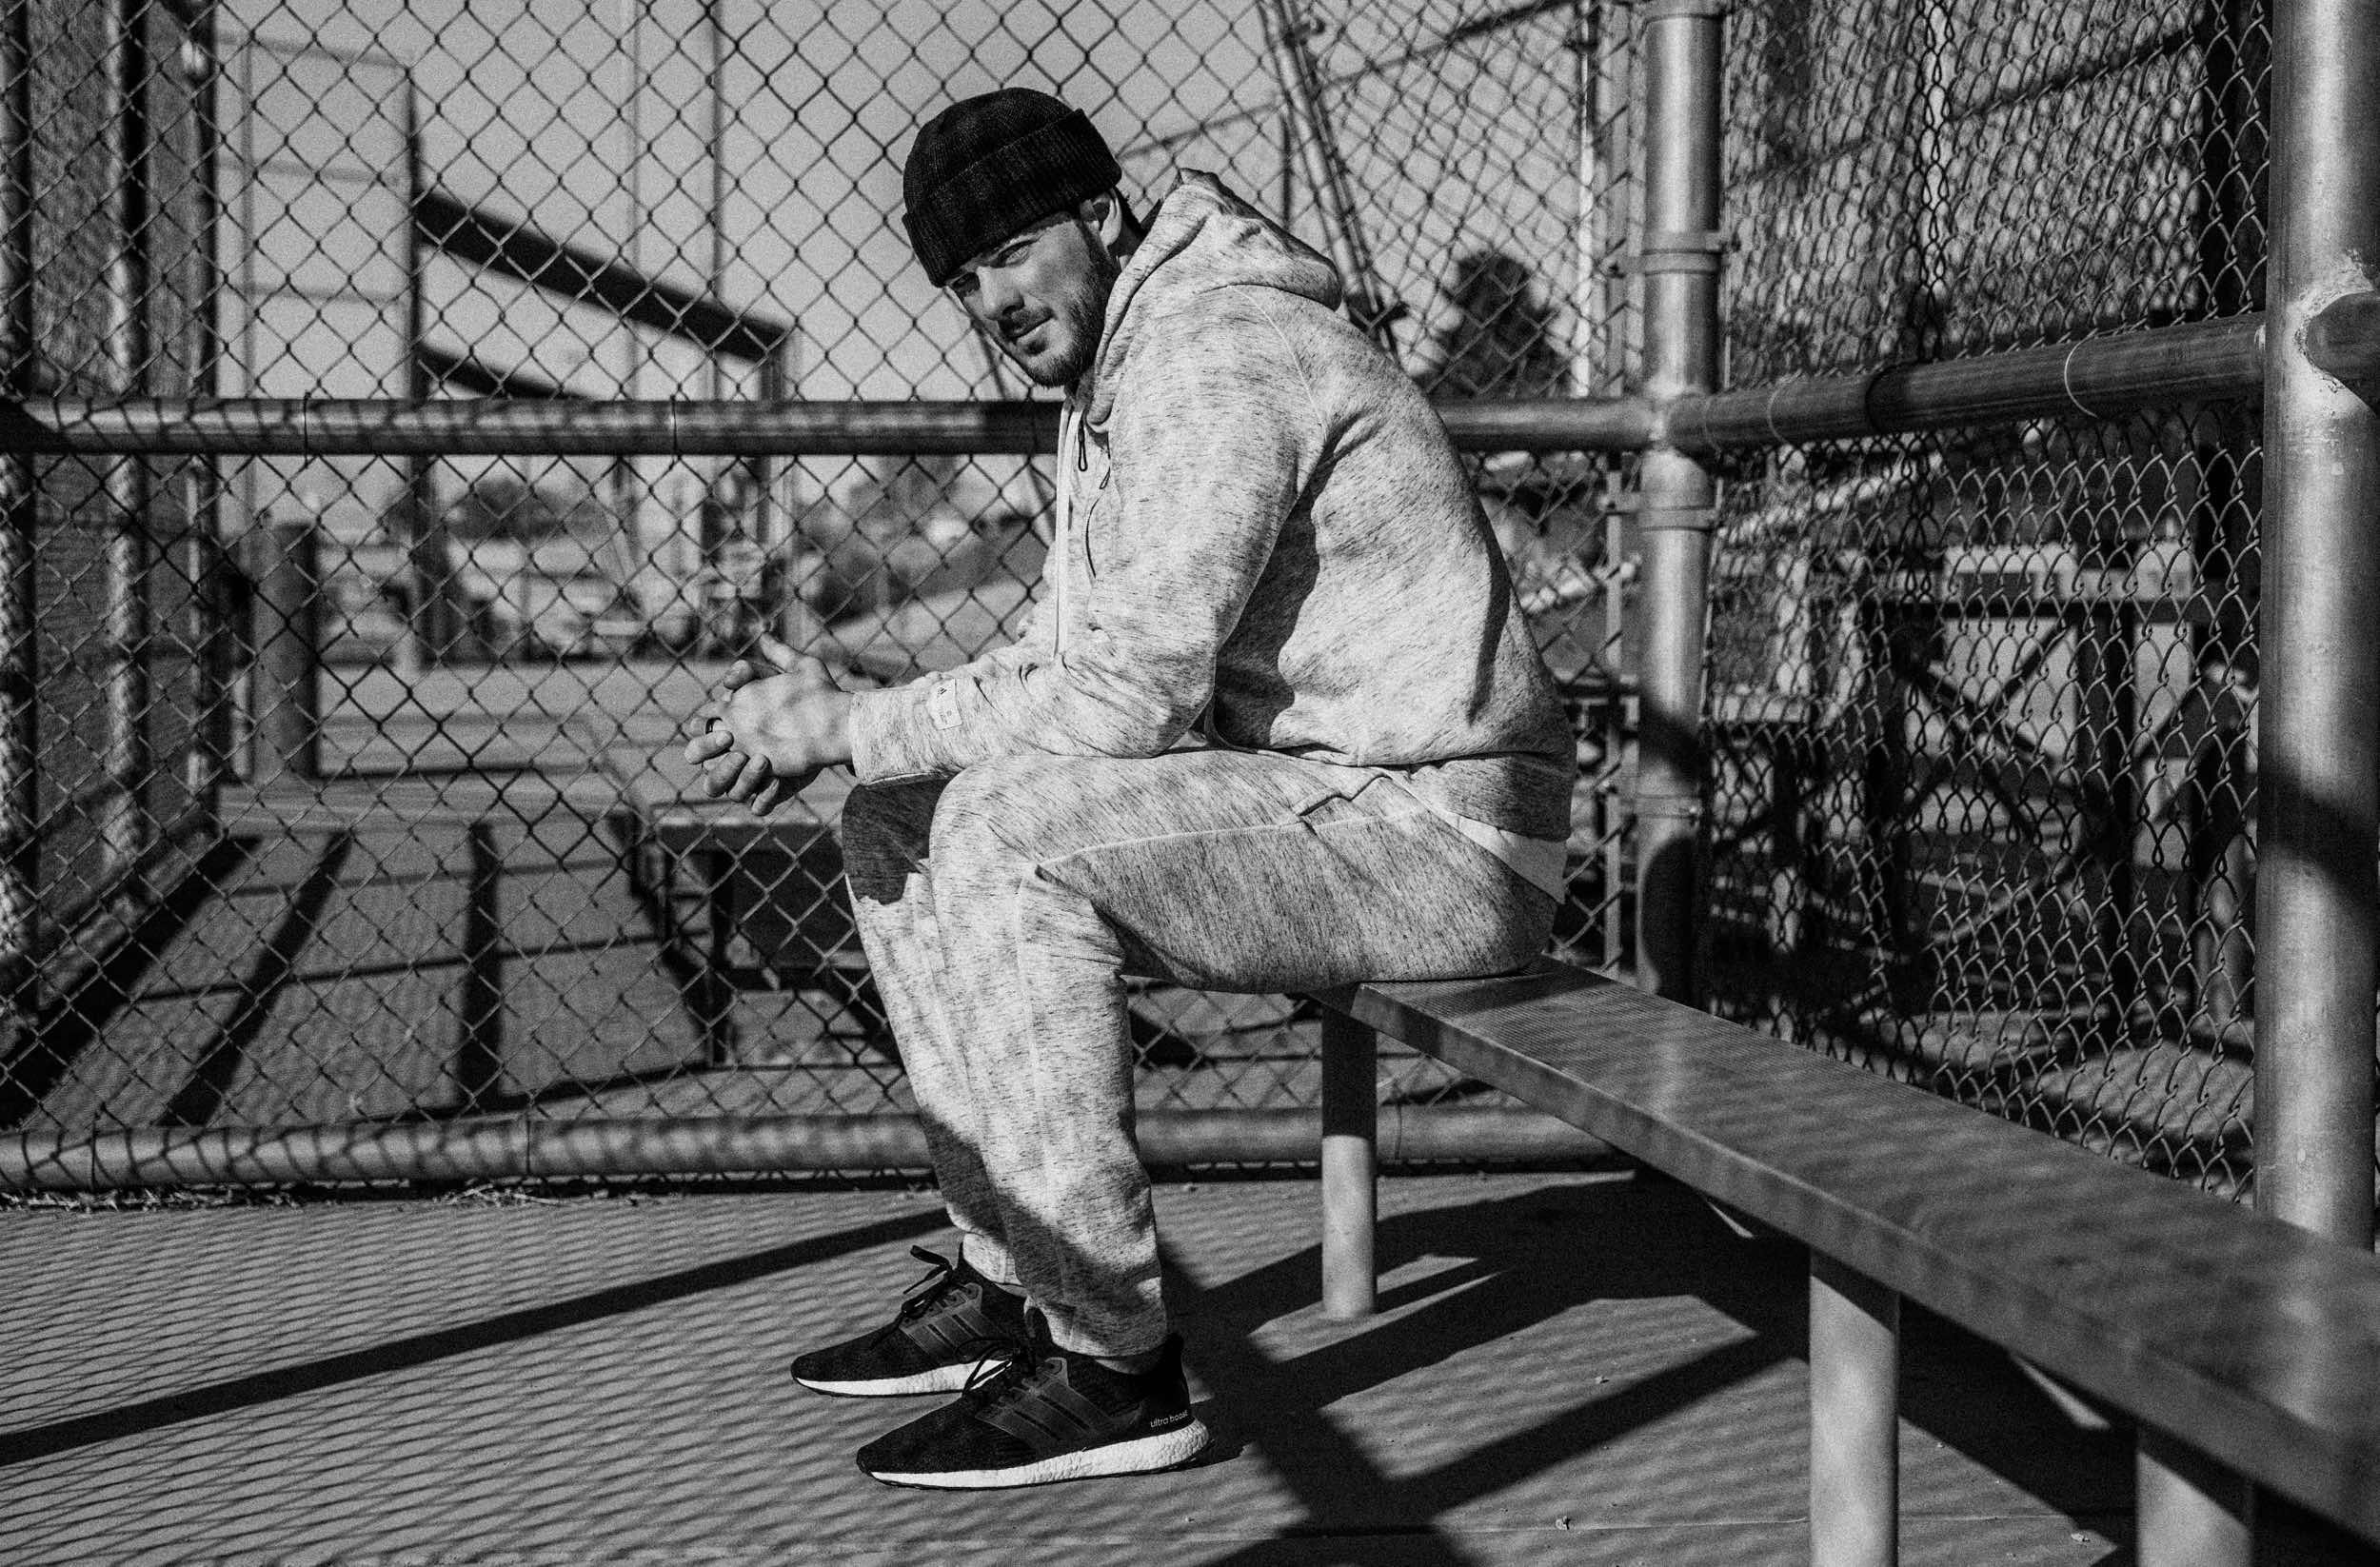 bced5aa7e6f914 adidas Athletics x Reigning Champ Collection Offers Primeknit ...